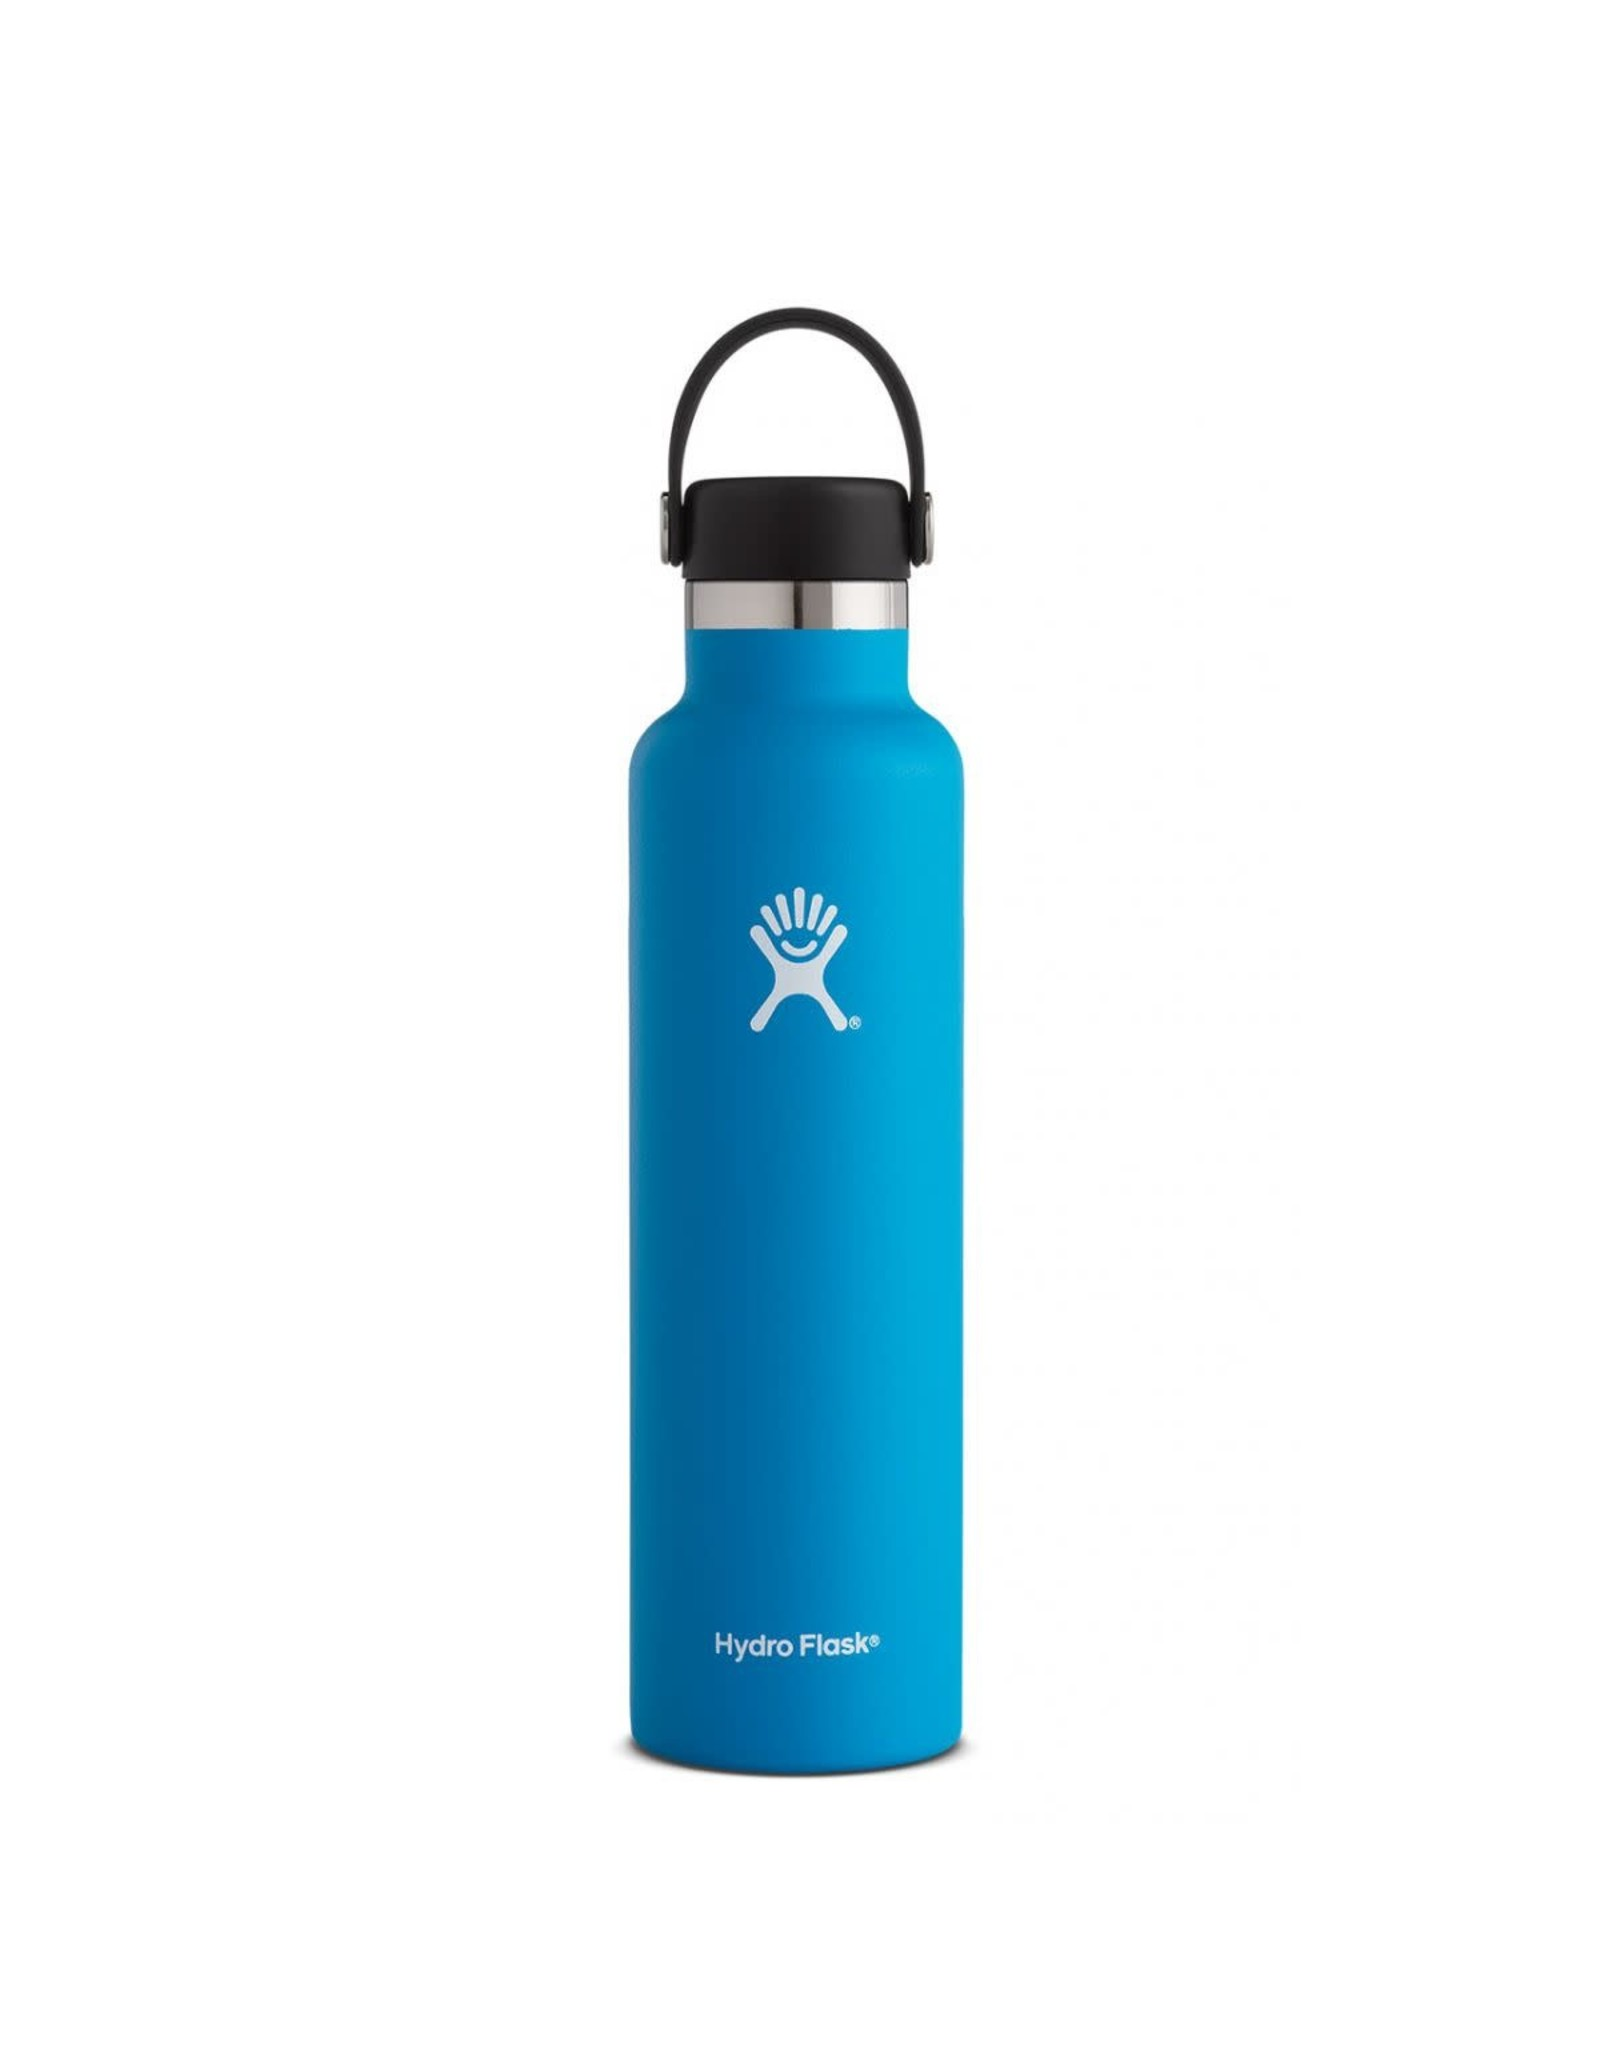 Hydro Flask Hydro Flask 24oz Standard Mouth with Flex Cap Pacific